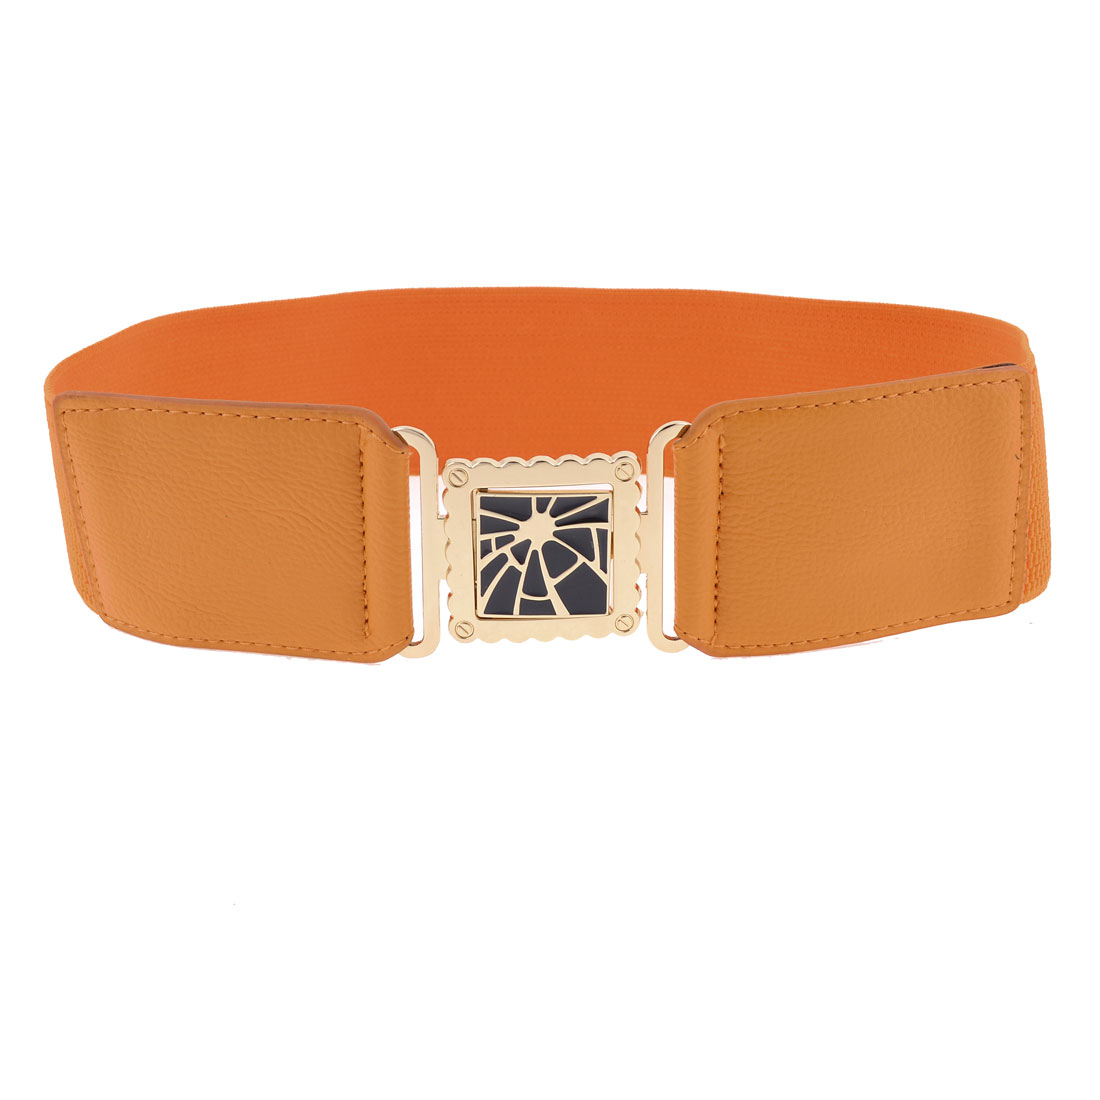 Women Square Interlock Buckle 6cm Wide Orangered Textured Elasticated Waist Belt